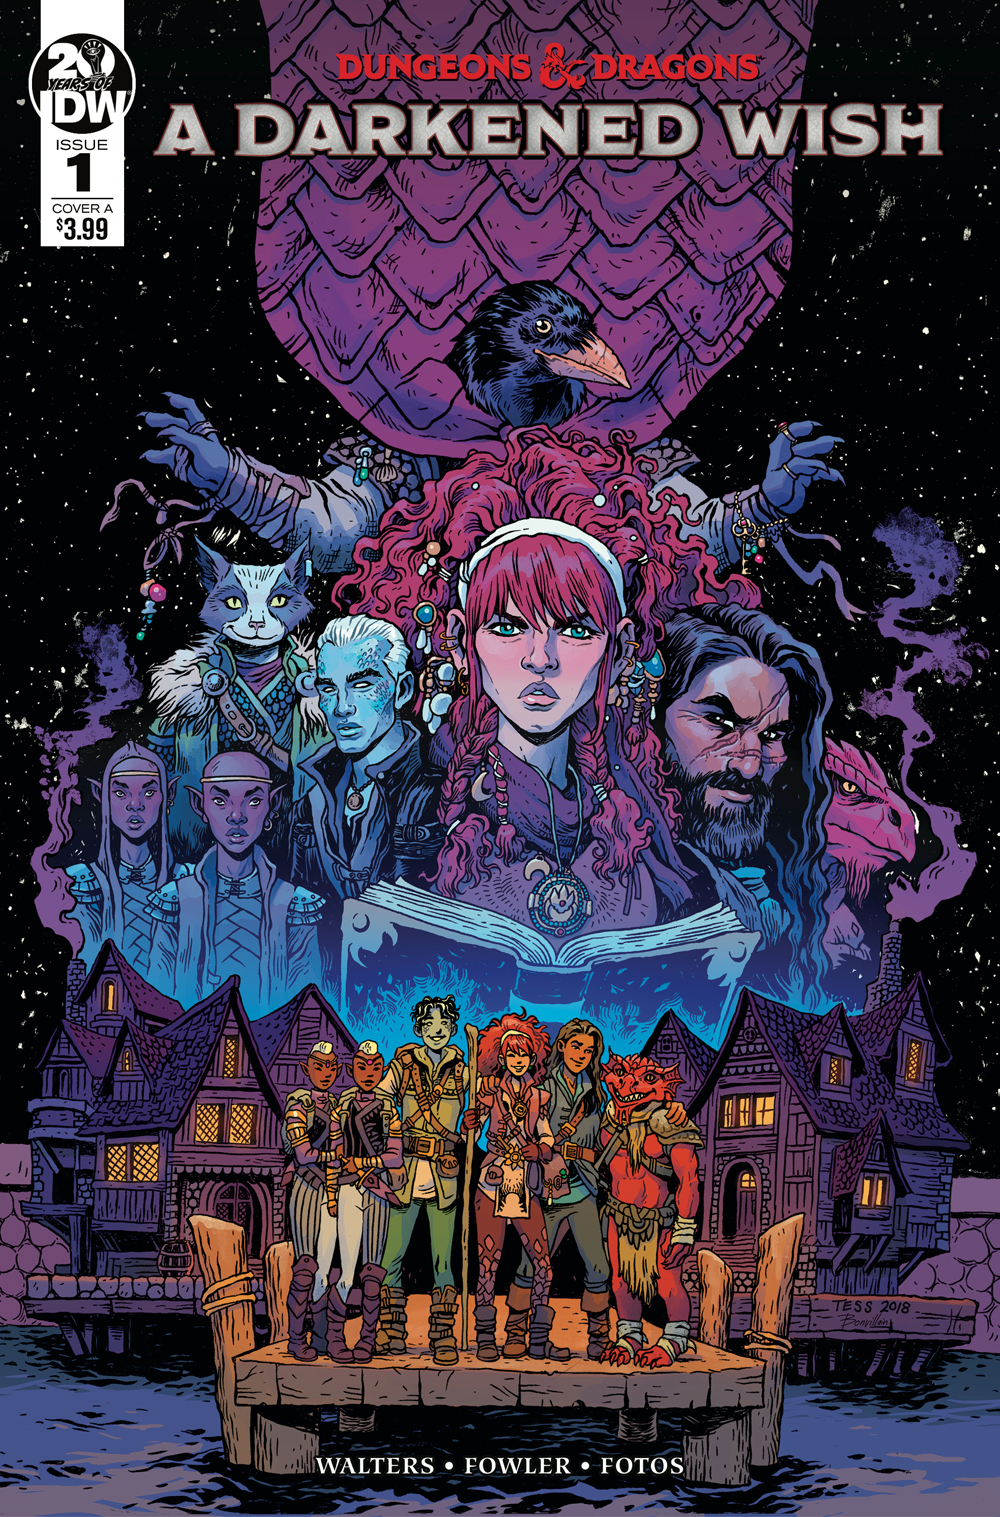 Dungeons & Dragons: A Darkened Wish #1  is out now.